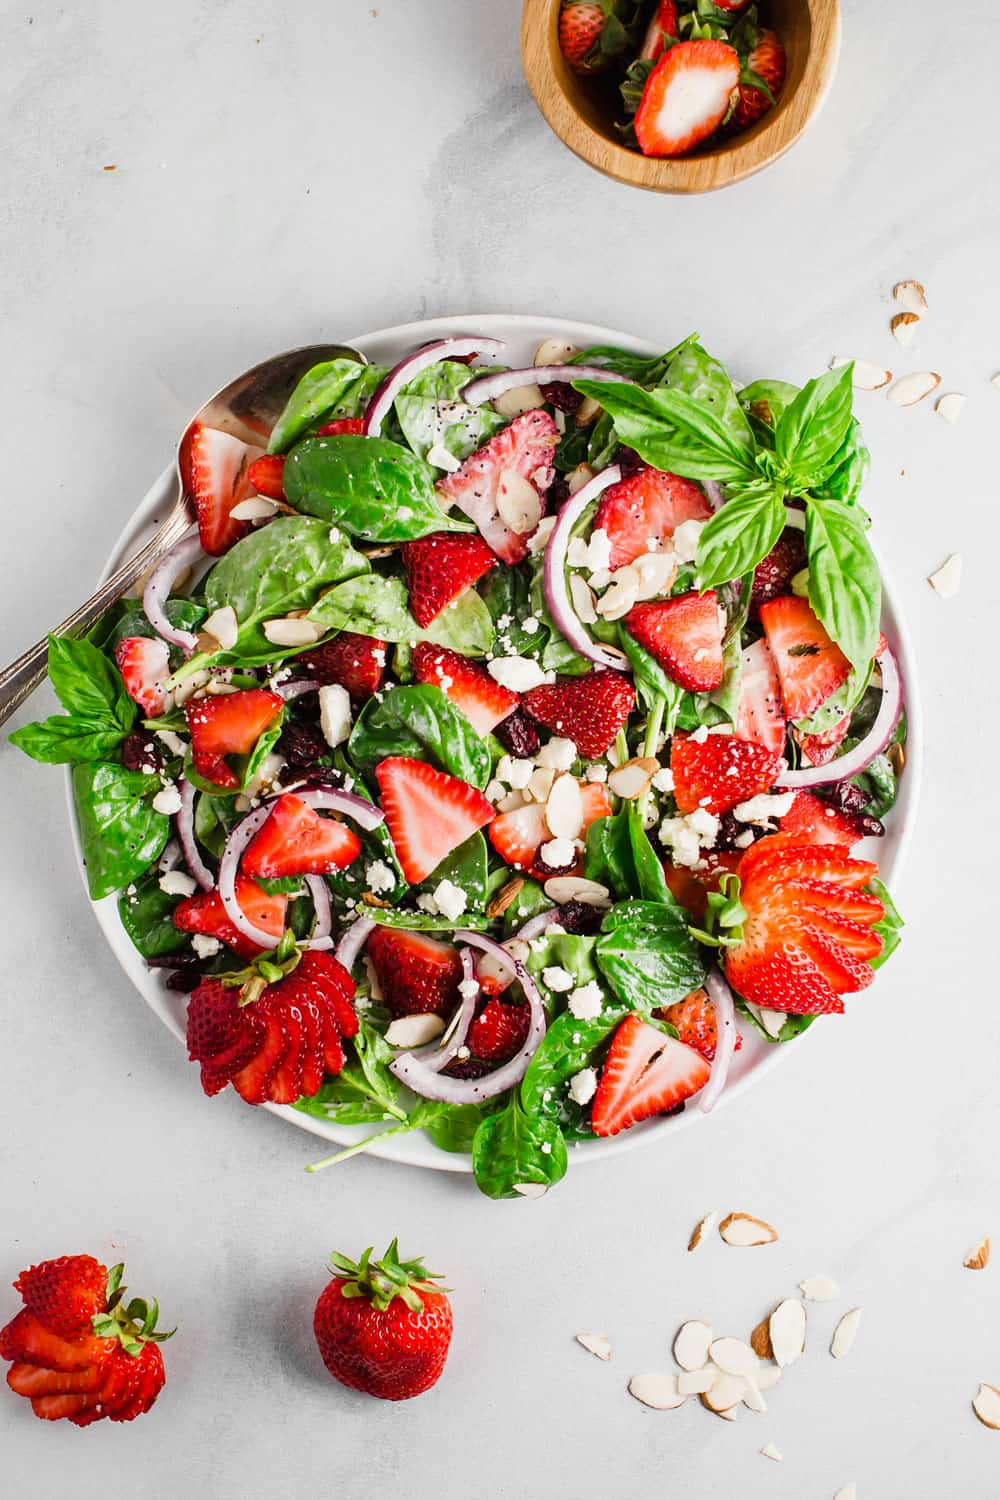 Strawberry Spinach Salad on a plate.